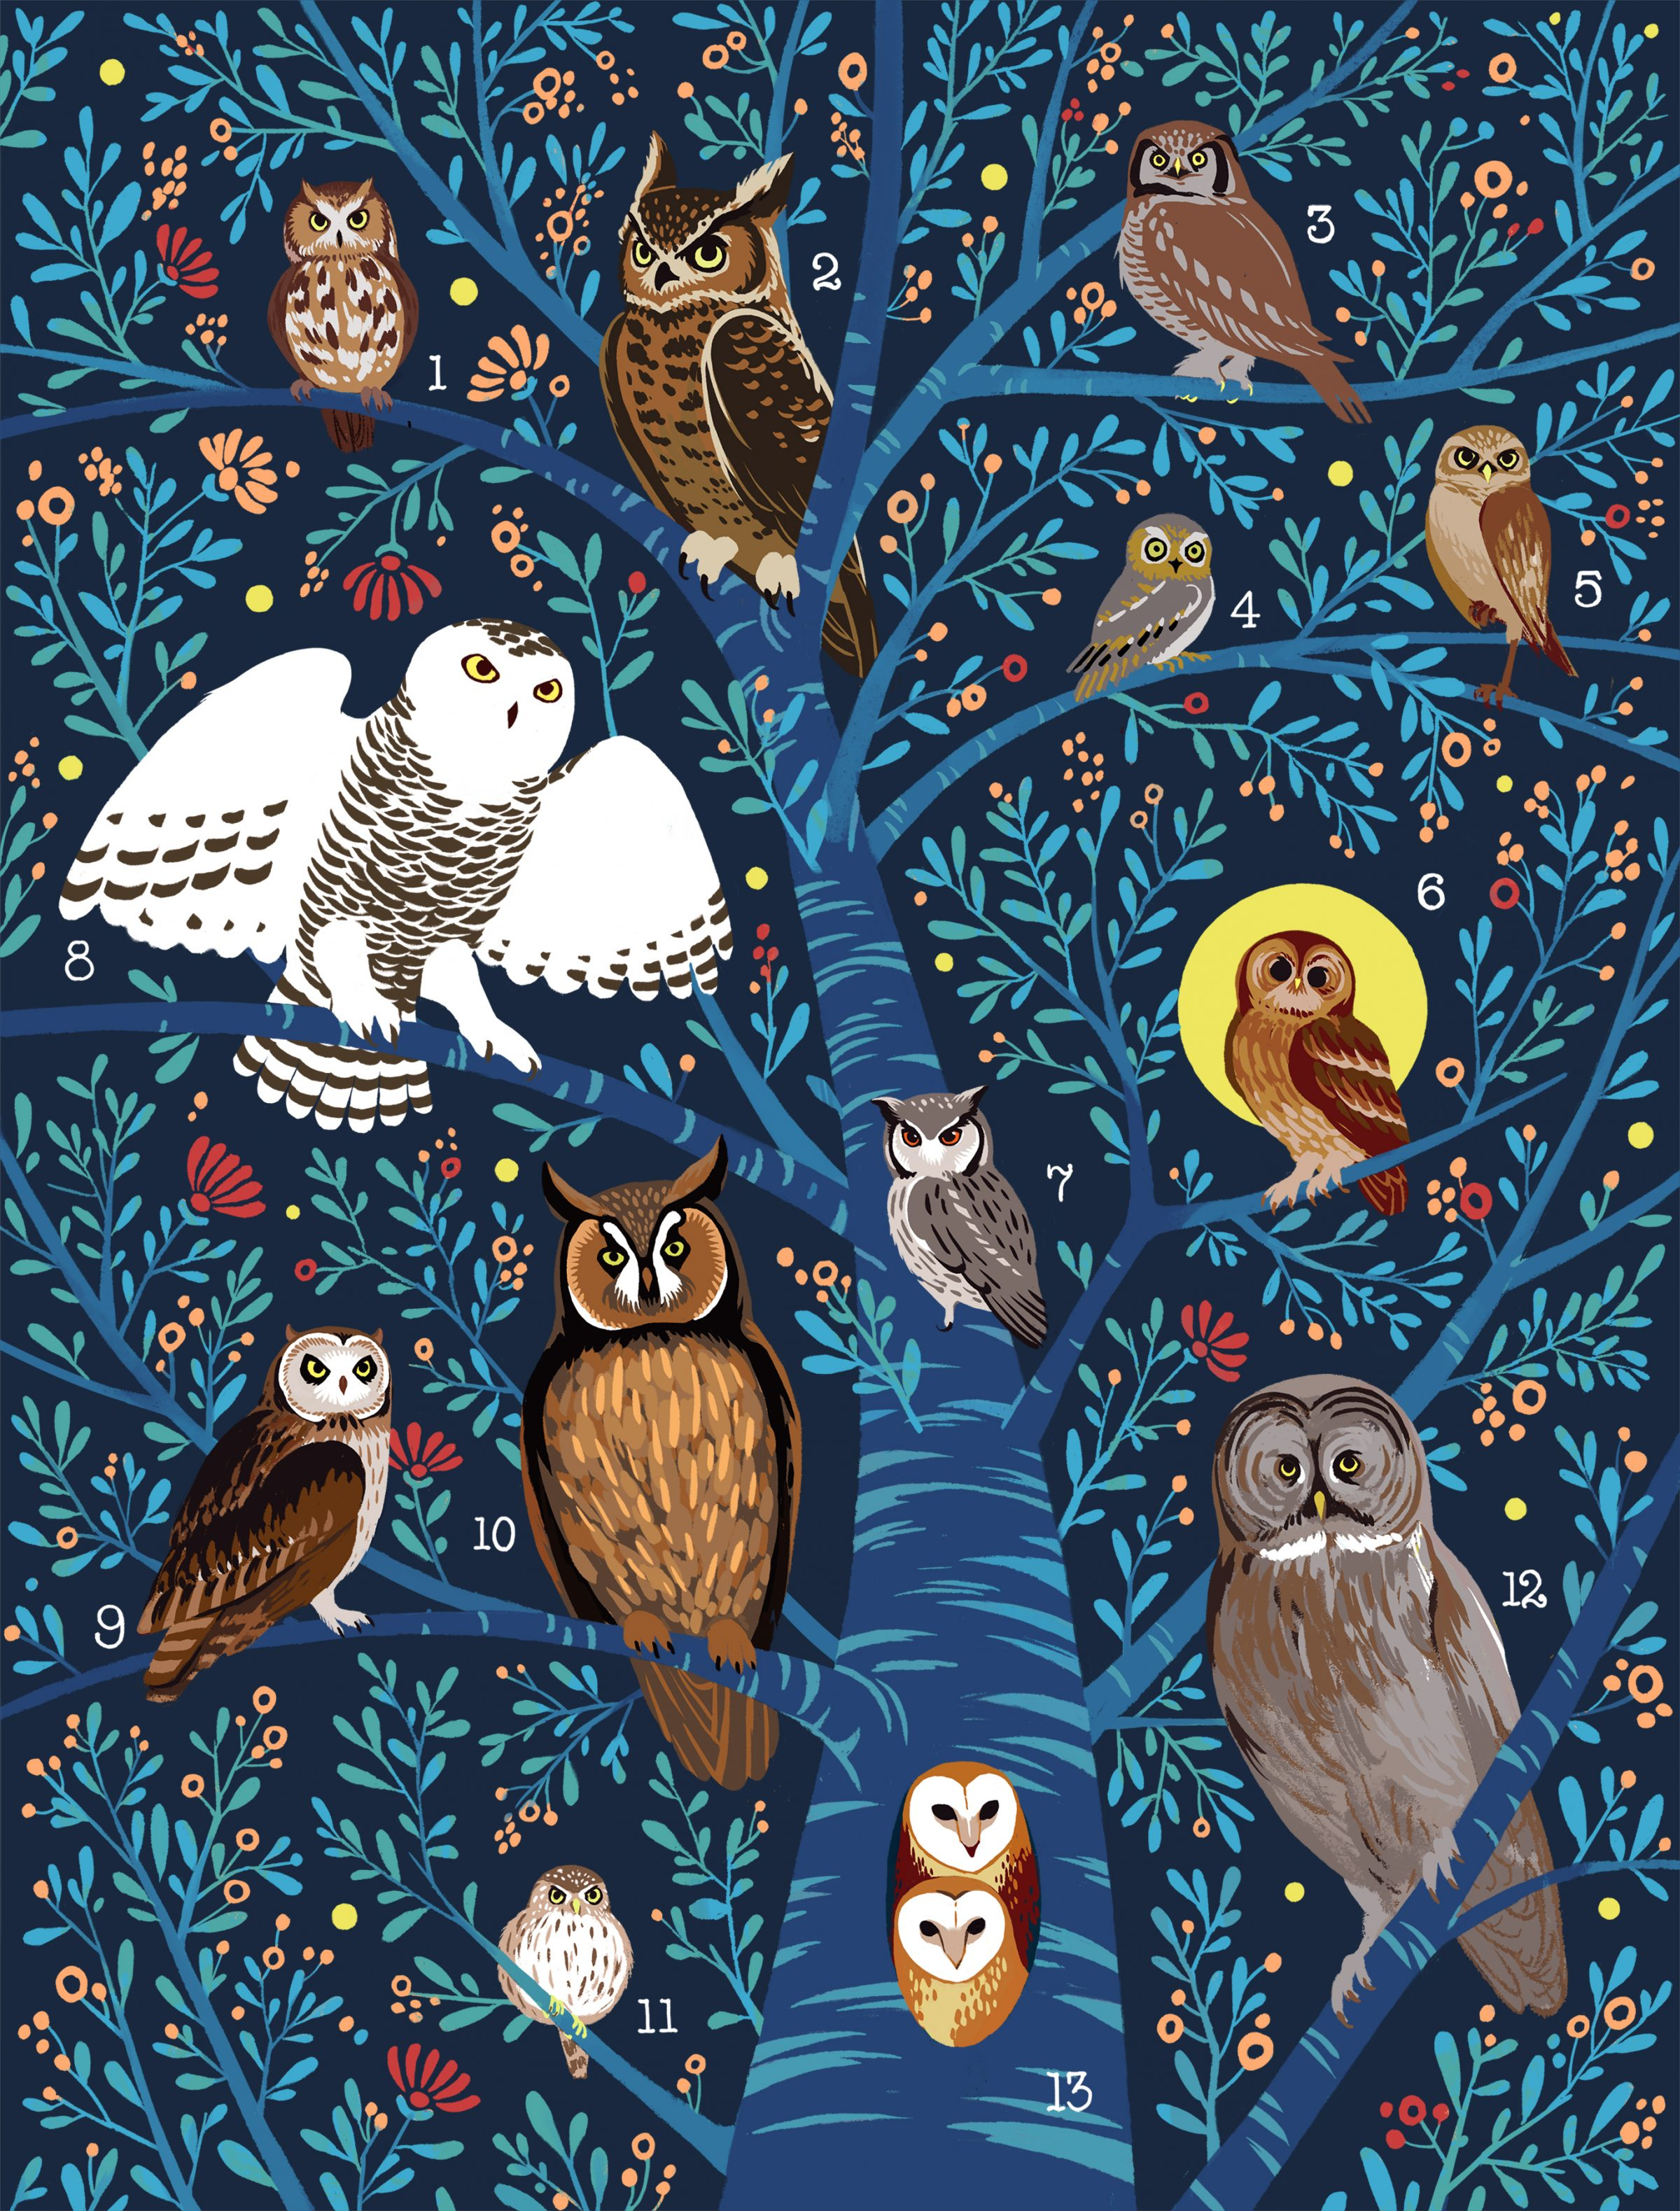 Xiao Lei : Owls of the World